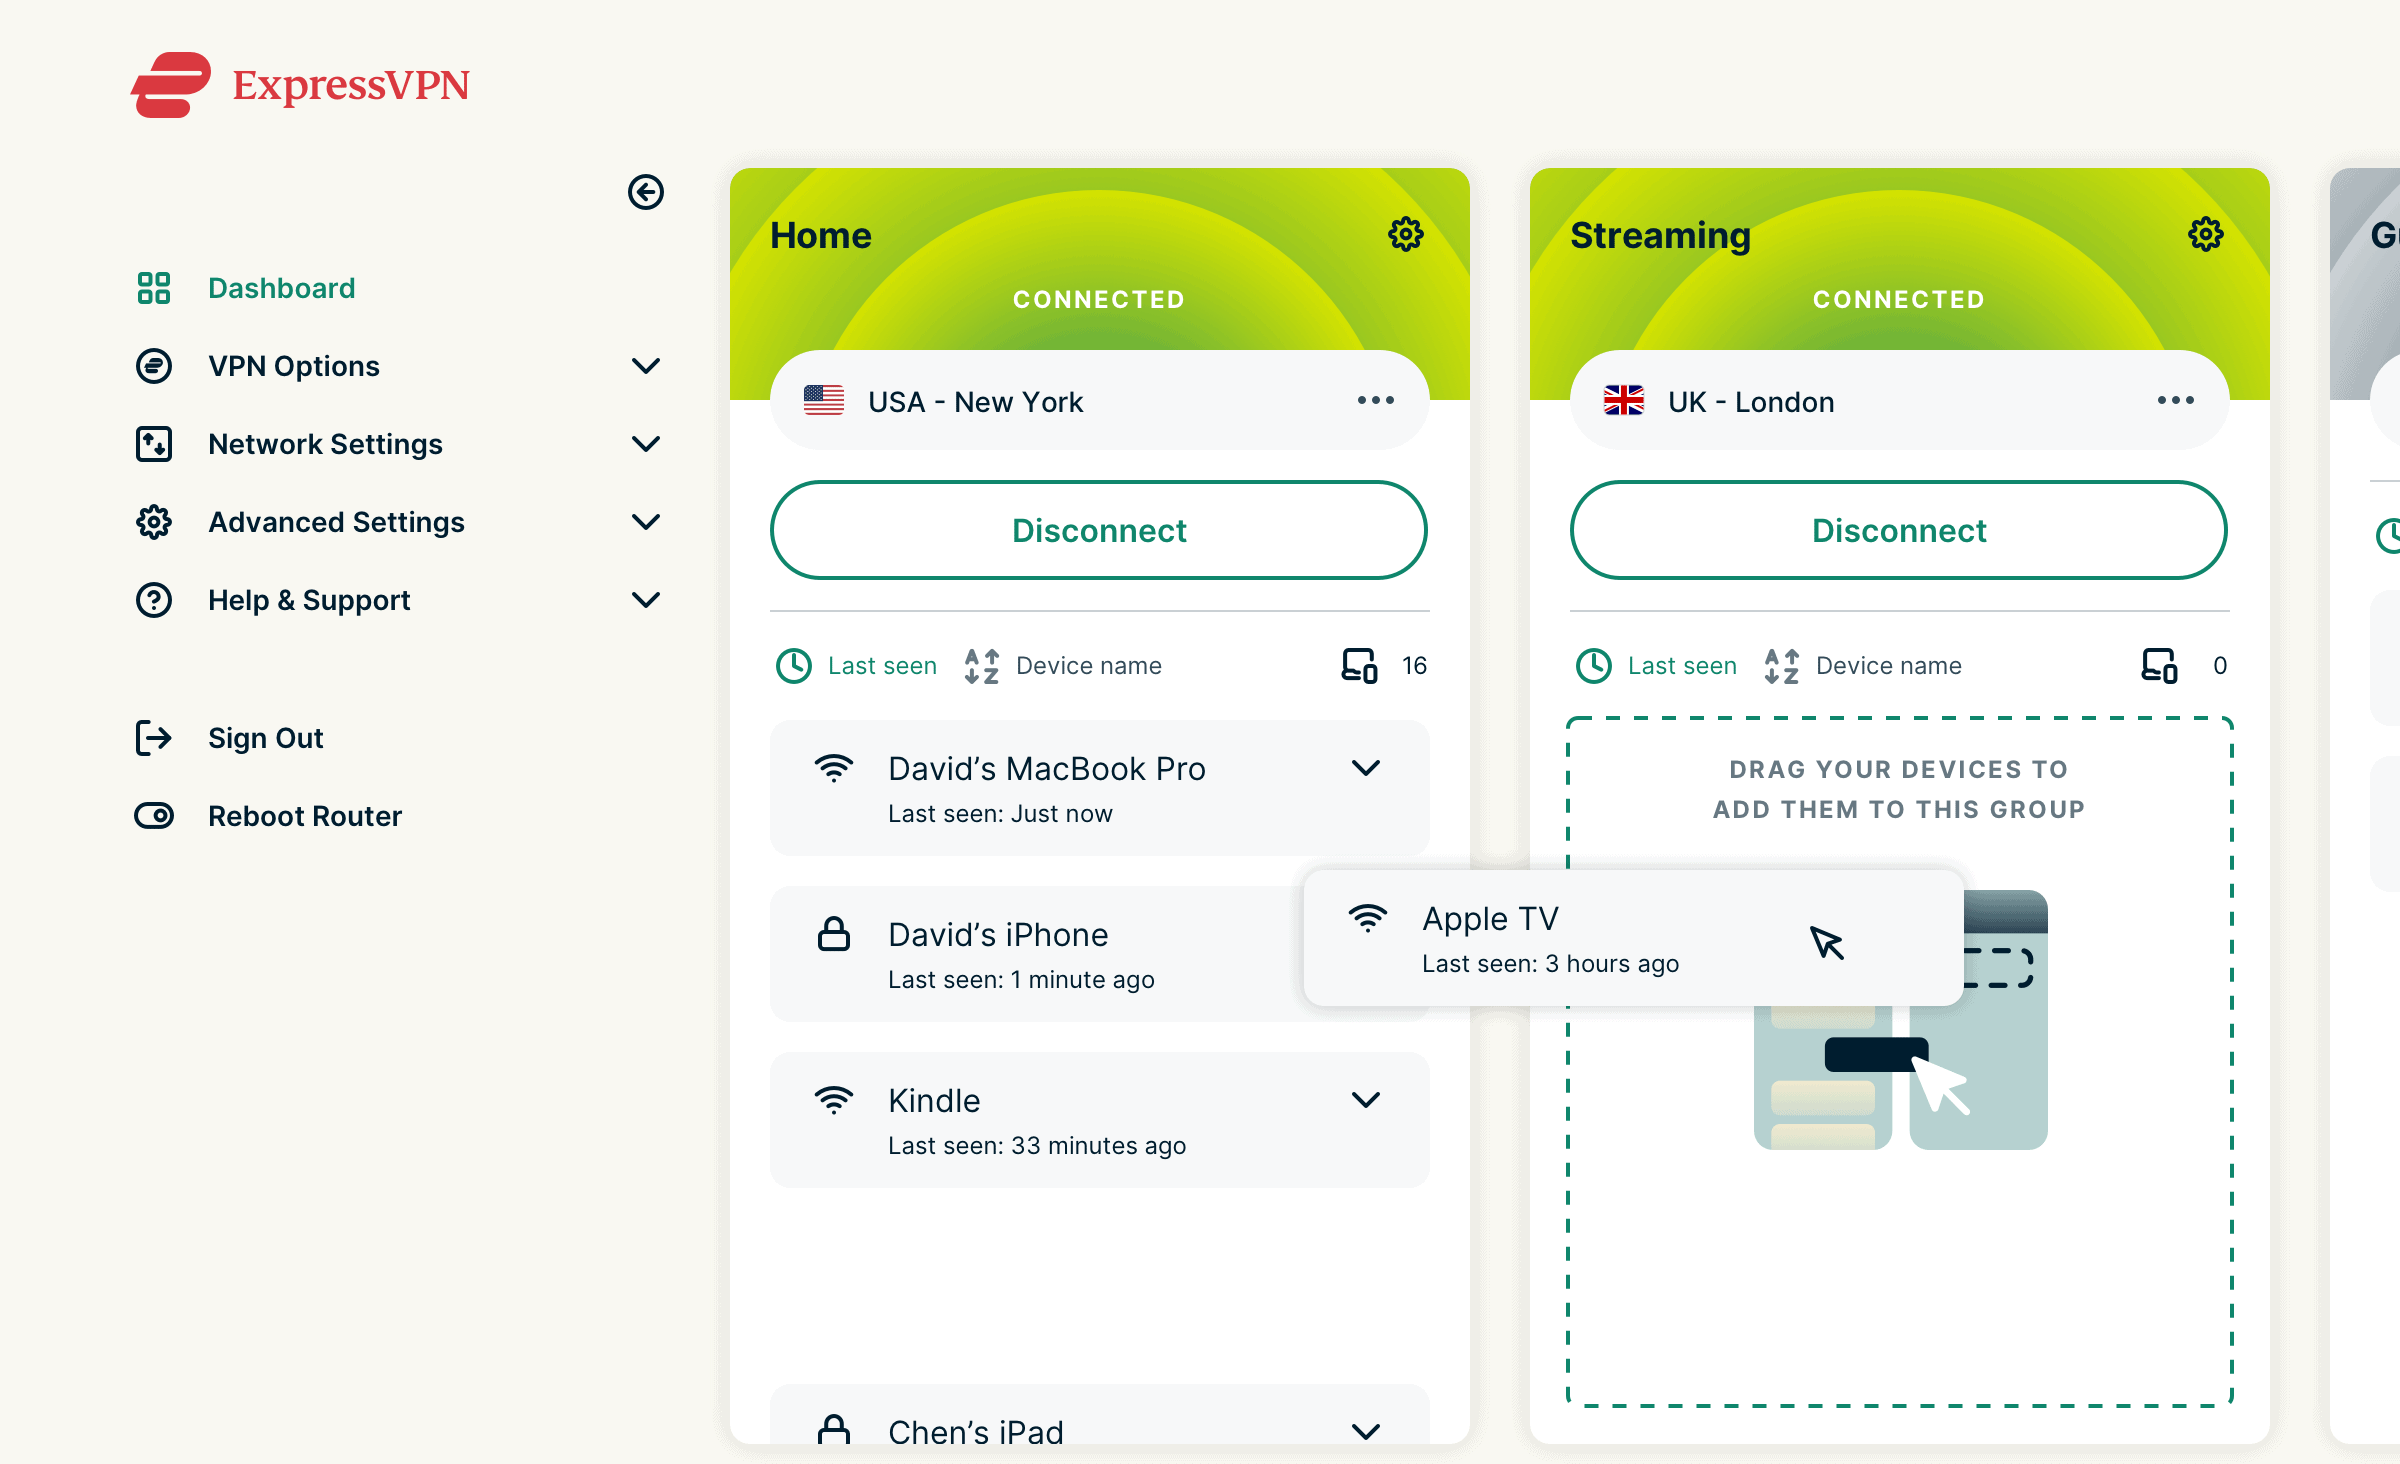 ExpressVPN router app Device Groups user interface.